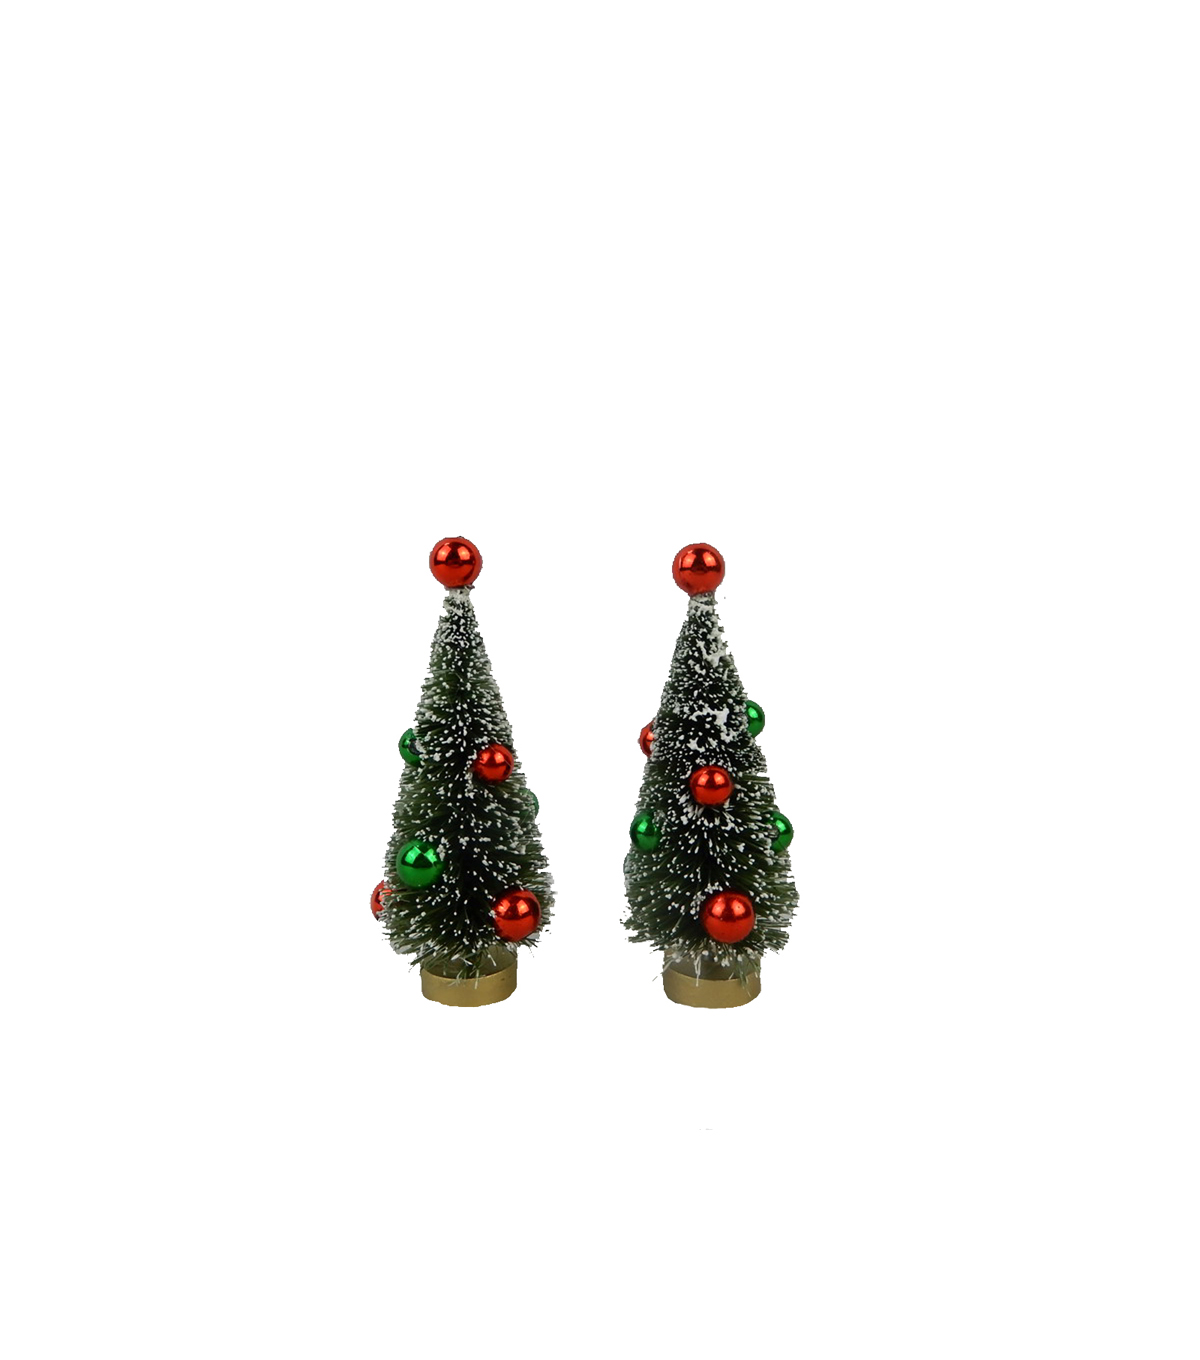 Maker\u0027s Holiday Christmas 2 pk Trees with Ornaments-Red & Green